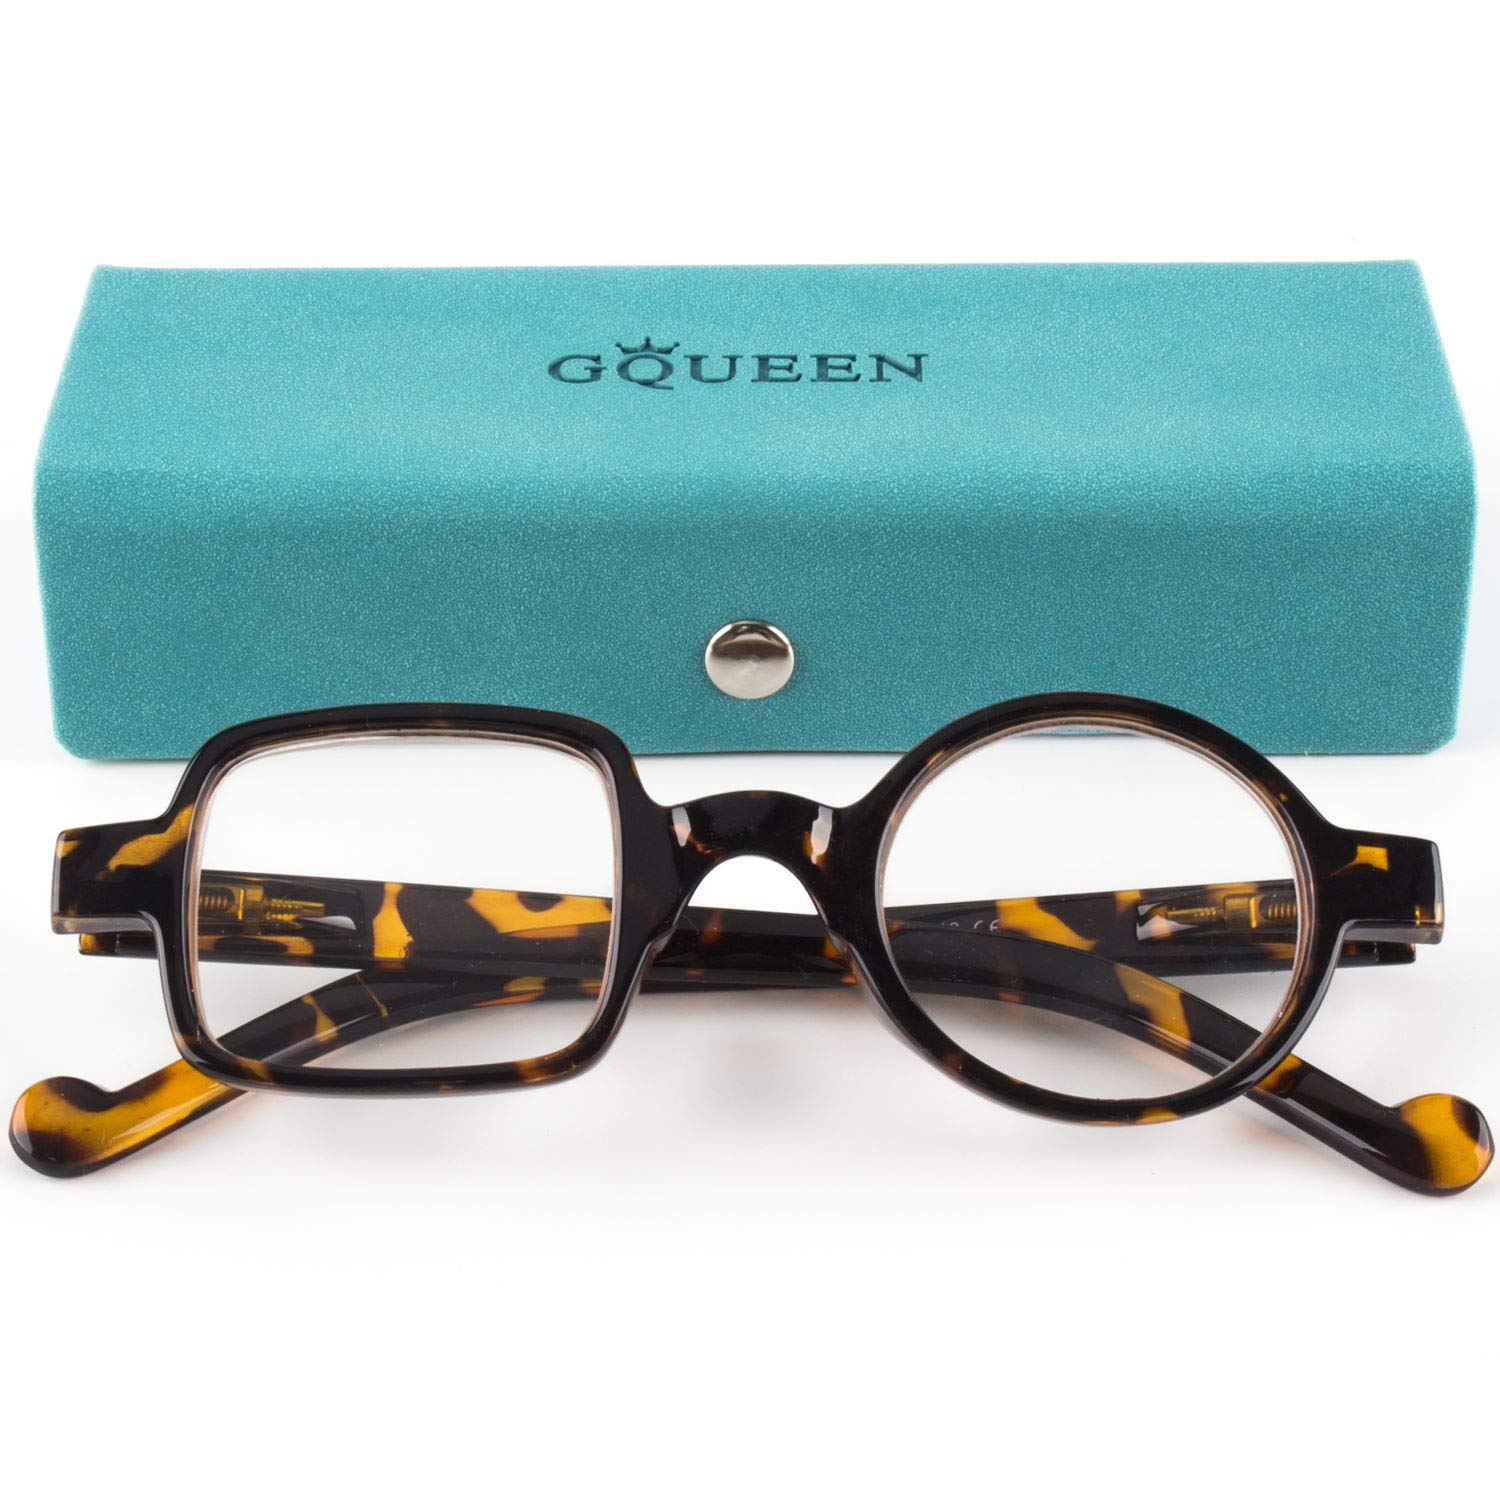 GQUEEN Stylish Reading Glasses Men Women Spring Hinge Unisex Readers Glasses 1.5 LH13